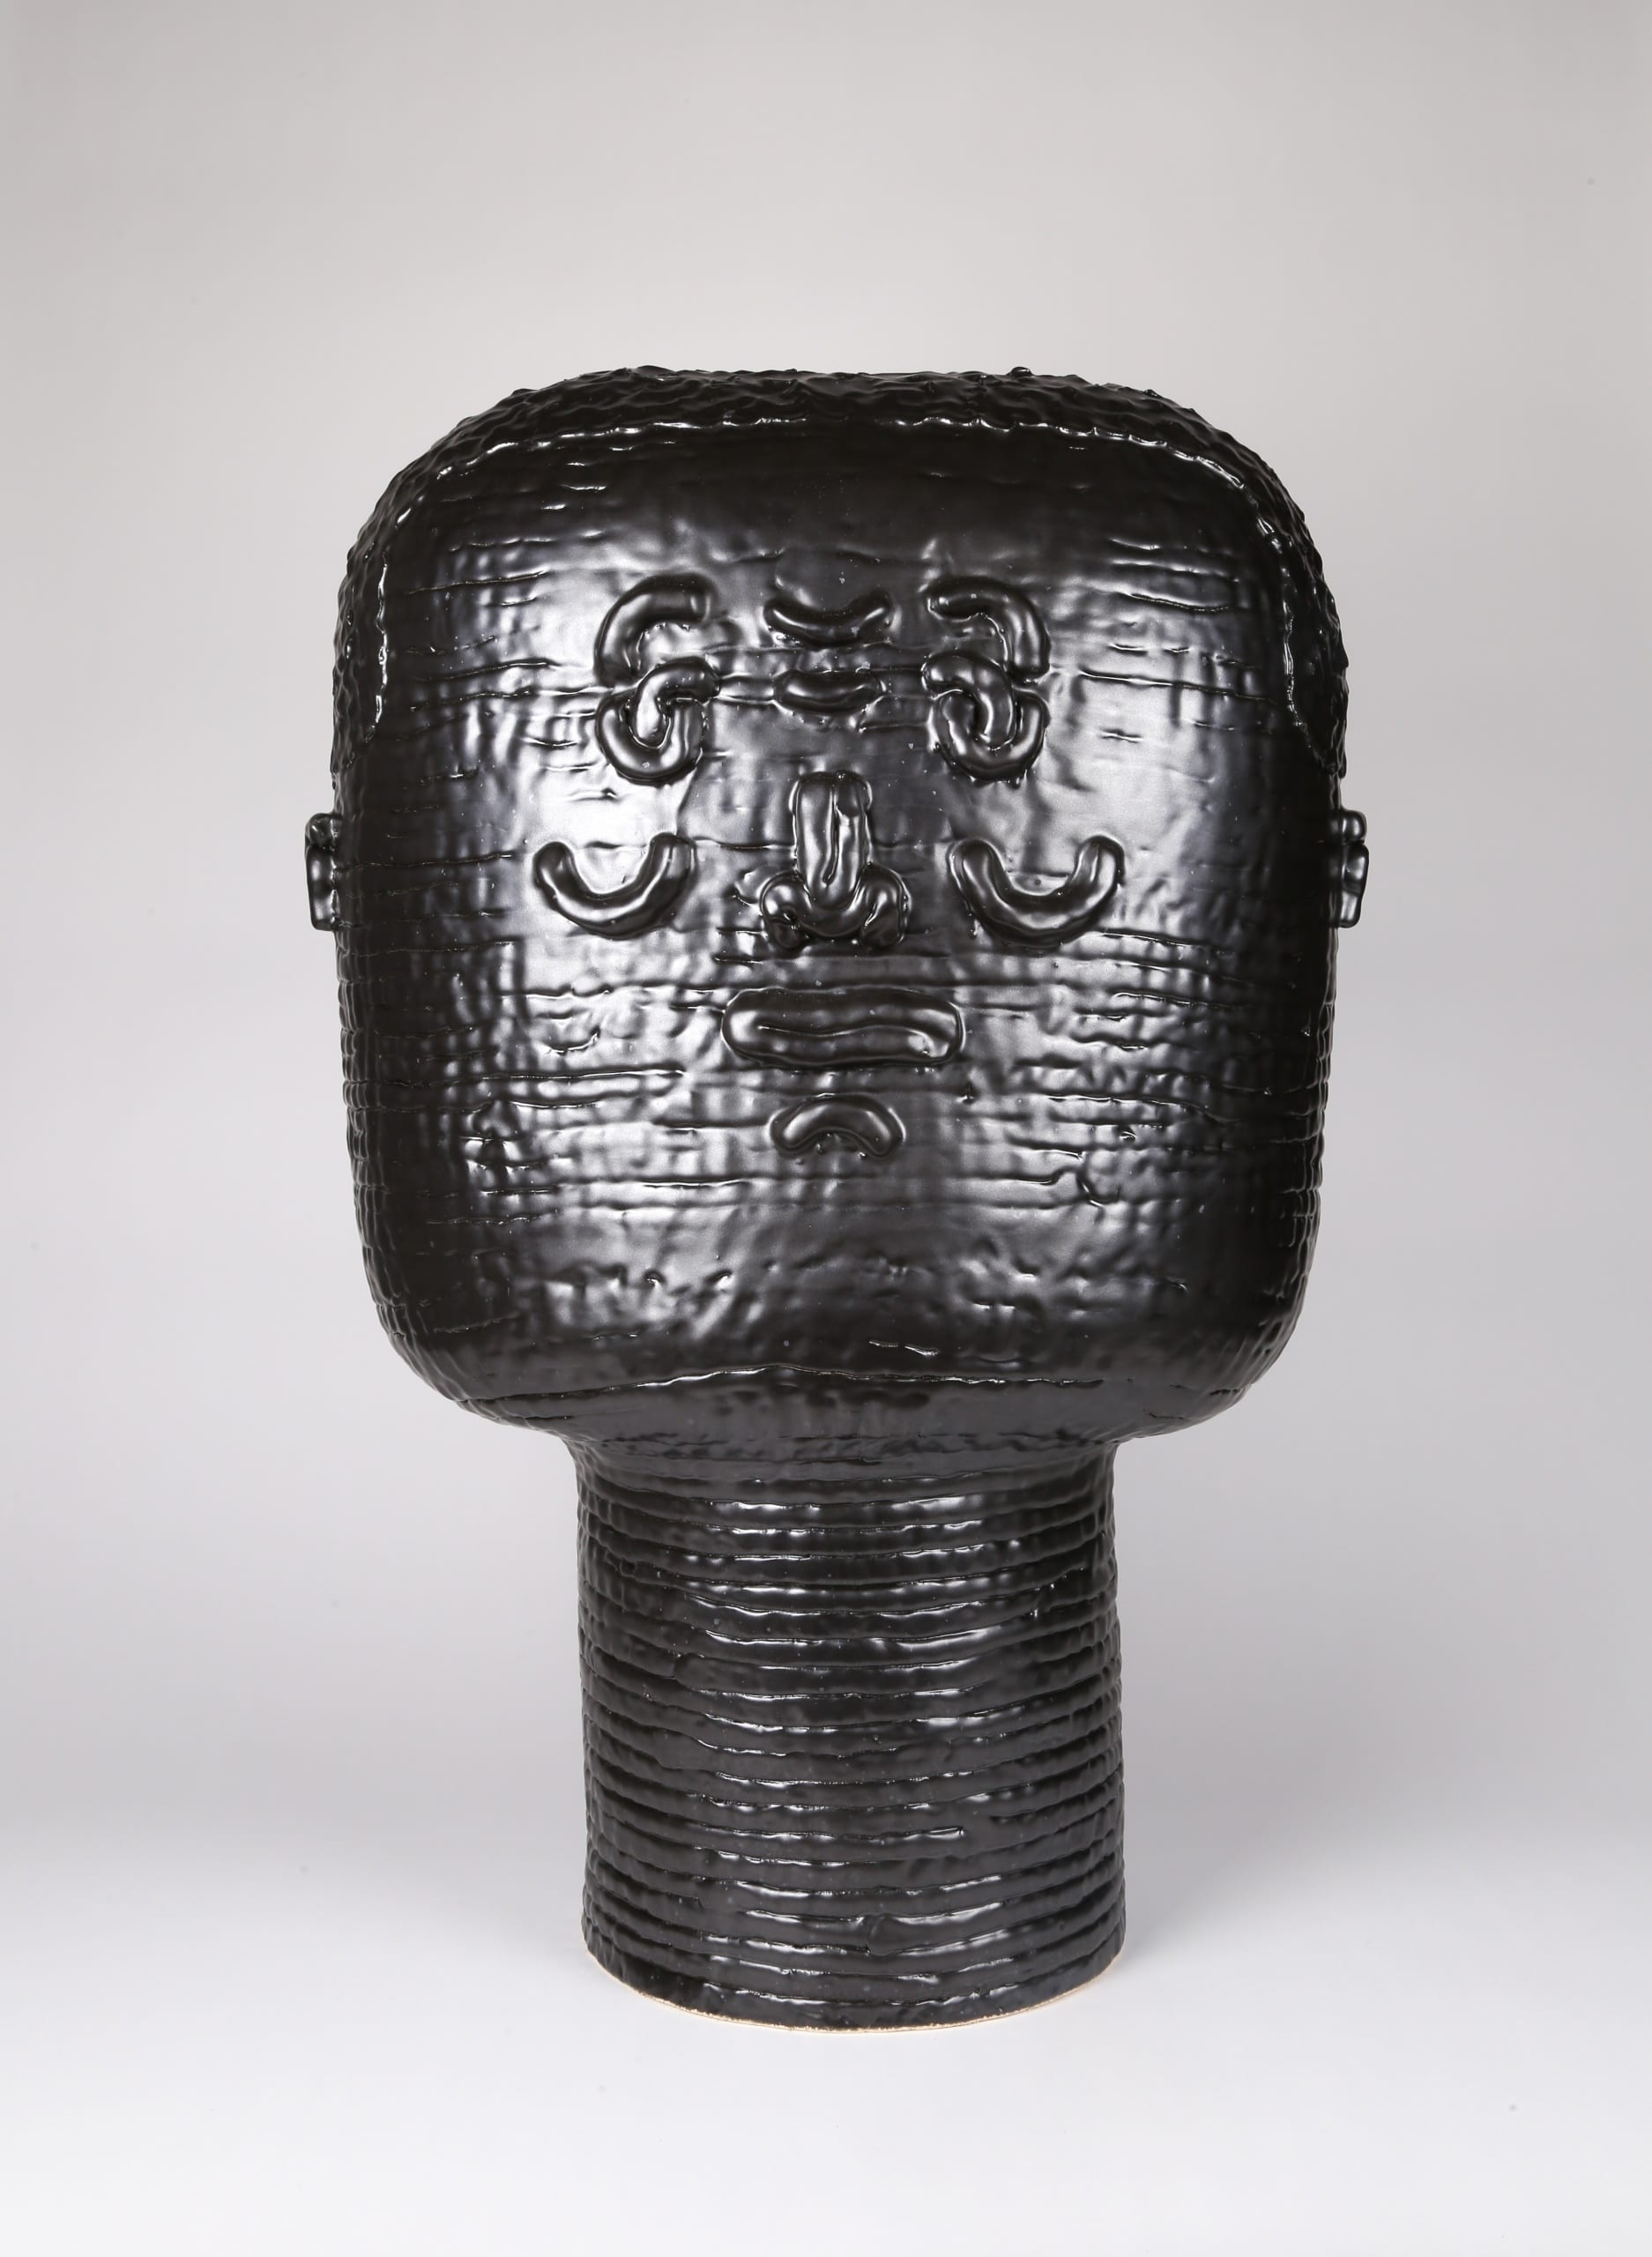 Color photograph with a frontal view of an abstract ceramic portrait head that appears to be made from a long coil of clay. The head is sculpted to appear square or block-like. The outlines of two eyes, a nose, a mouth, and two ears are affixed to its surface, and the figure seems to be expressing a shy grin. The object is monochromatic (black), with a slight sheen to the glaze.